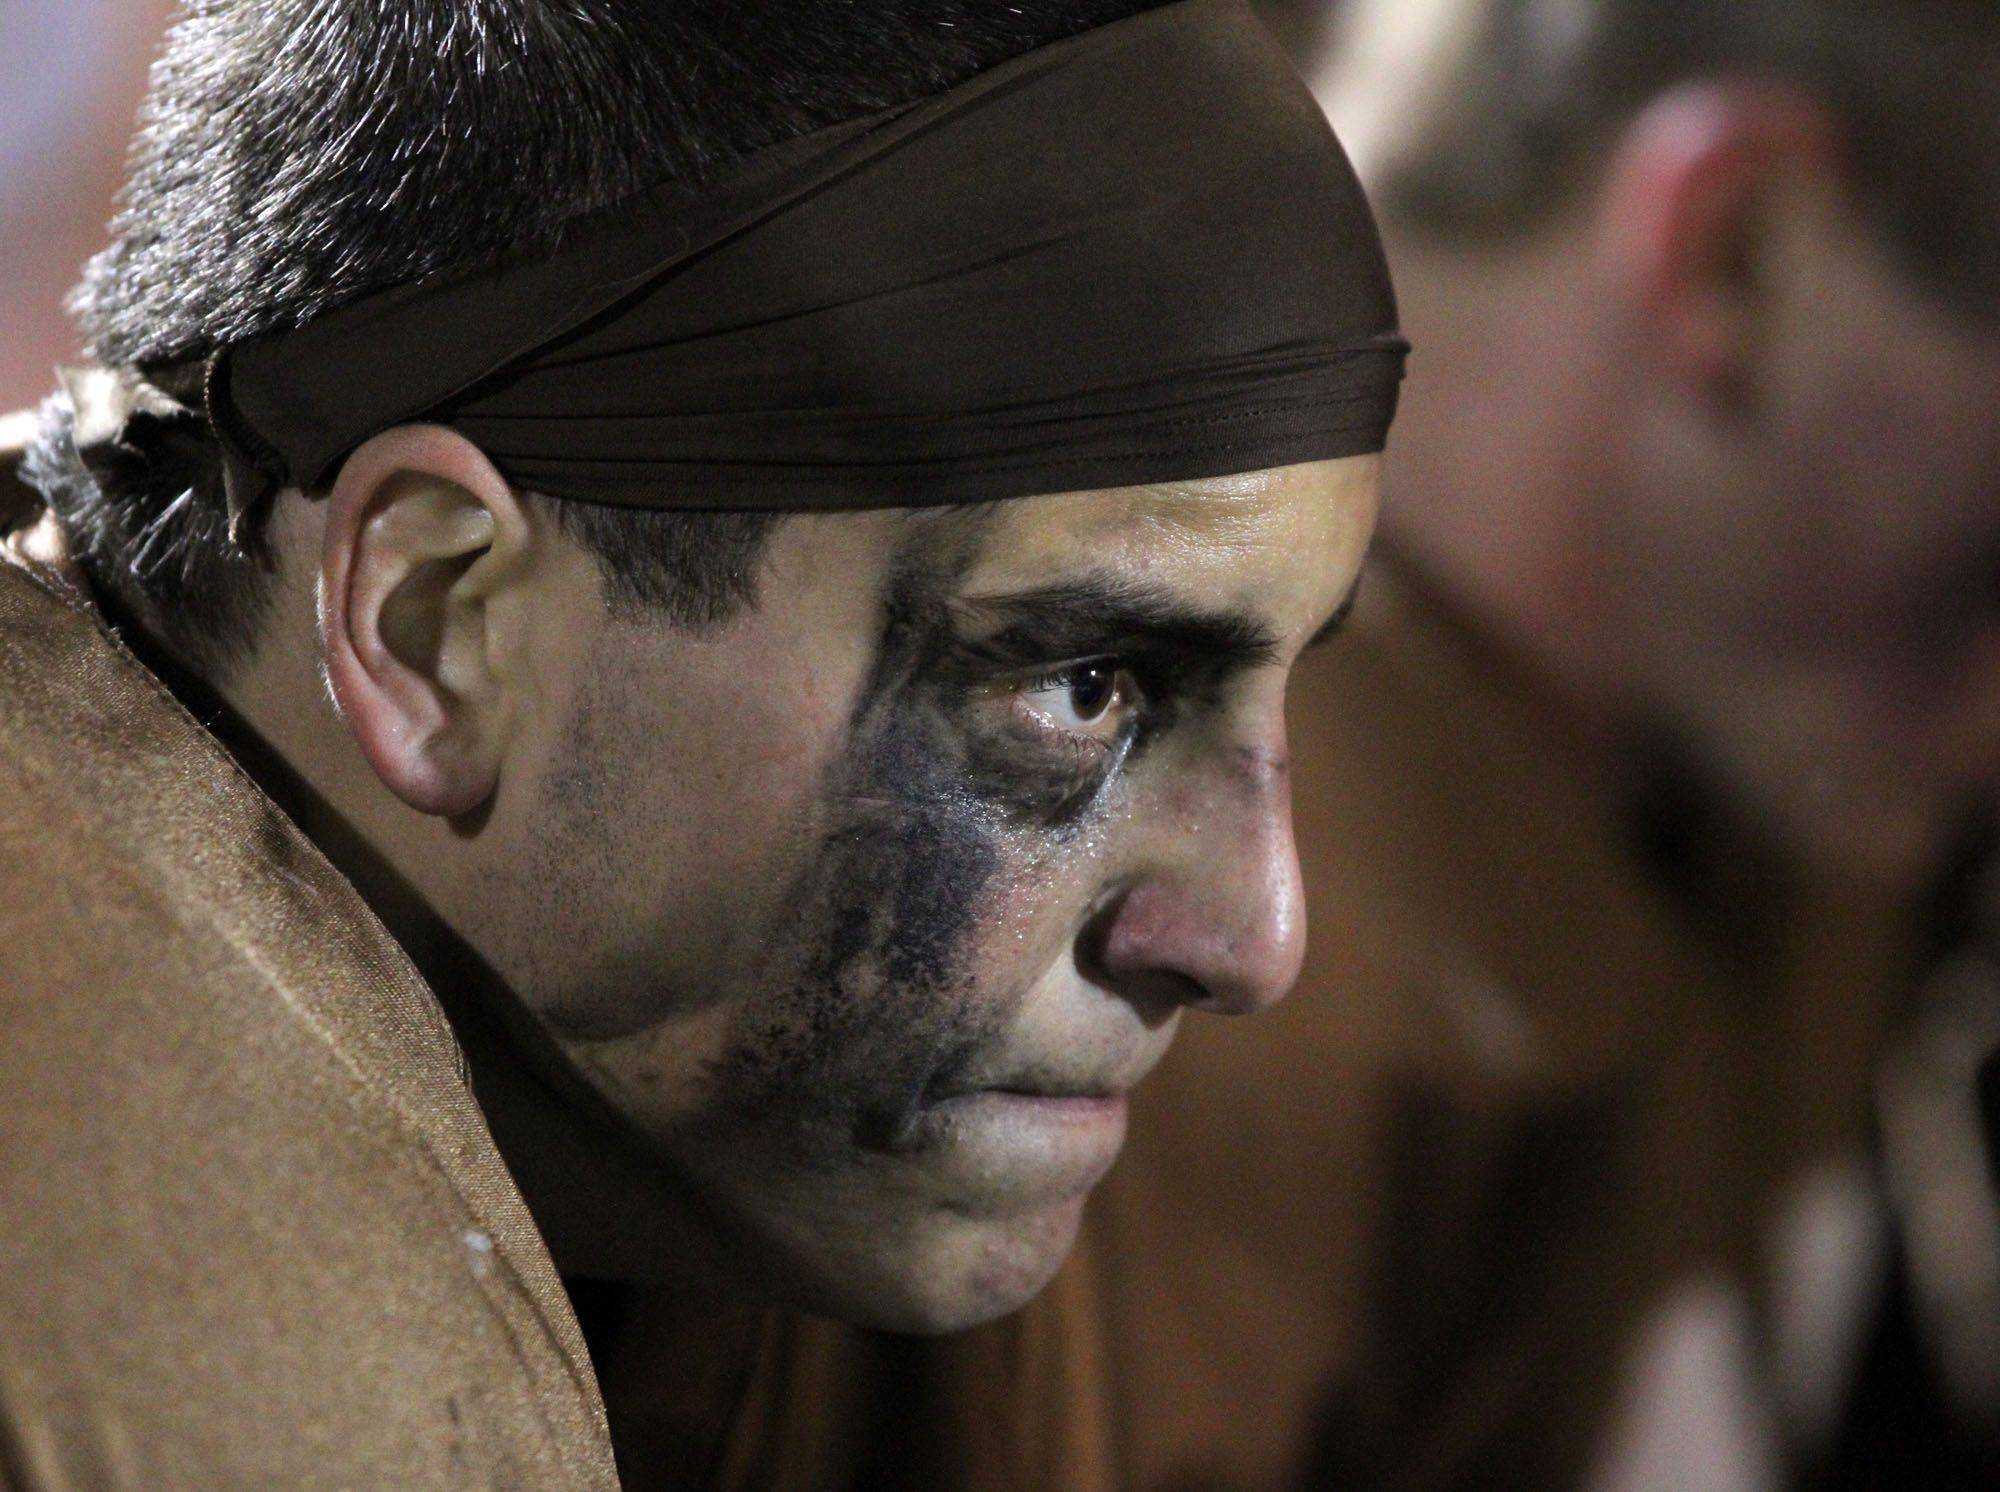 Playoffs - week one - Images from the Elgin at Carmel Class 7A state playoff football game Friday, October 29.